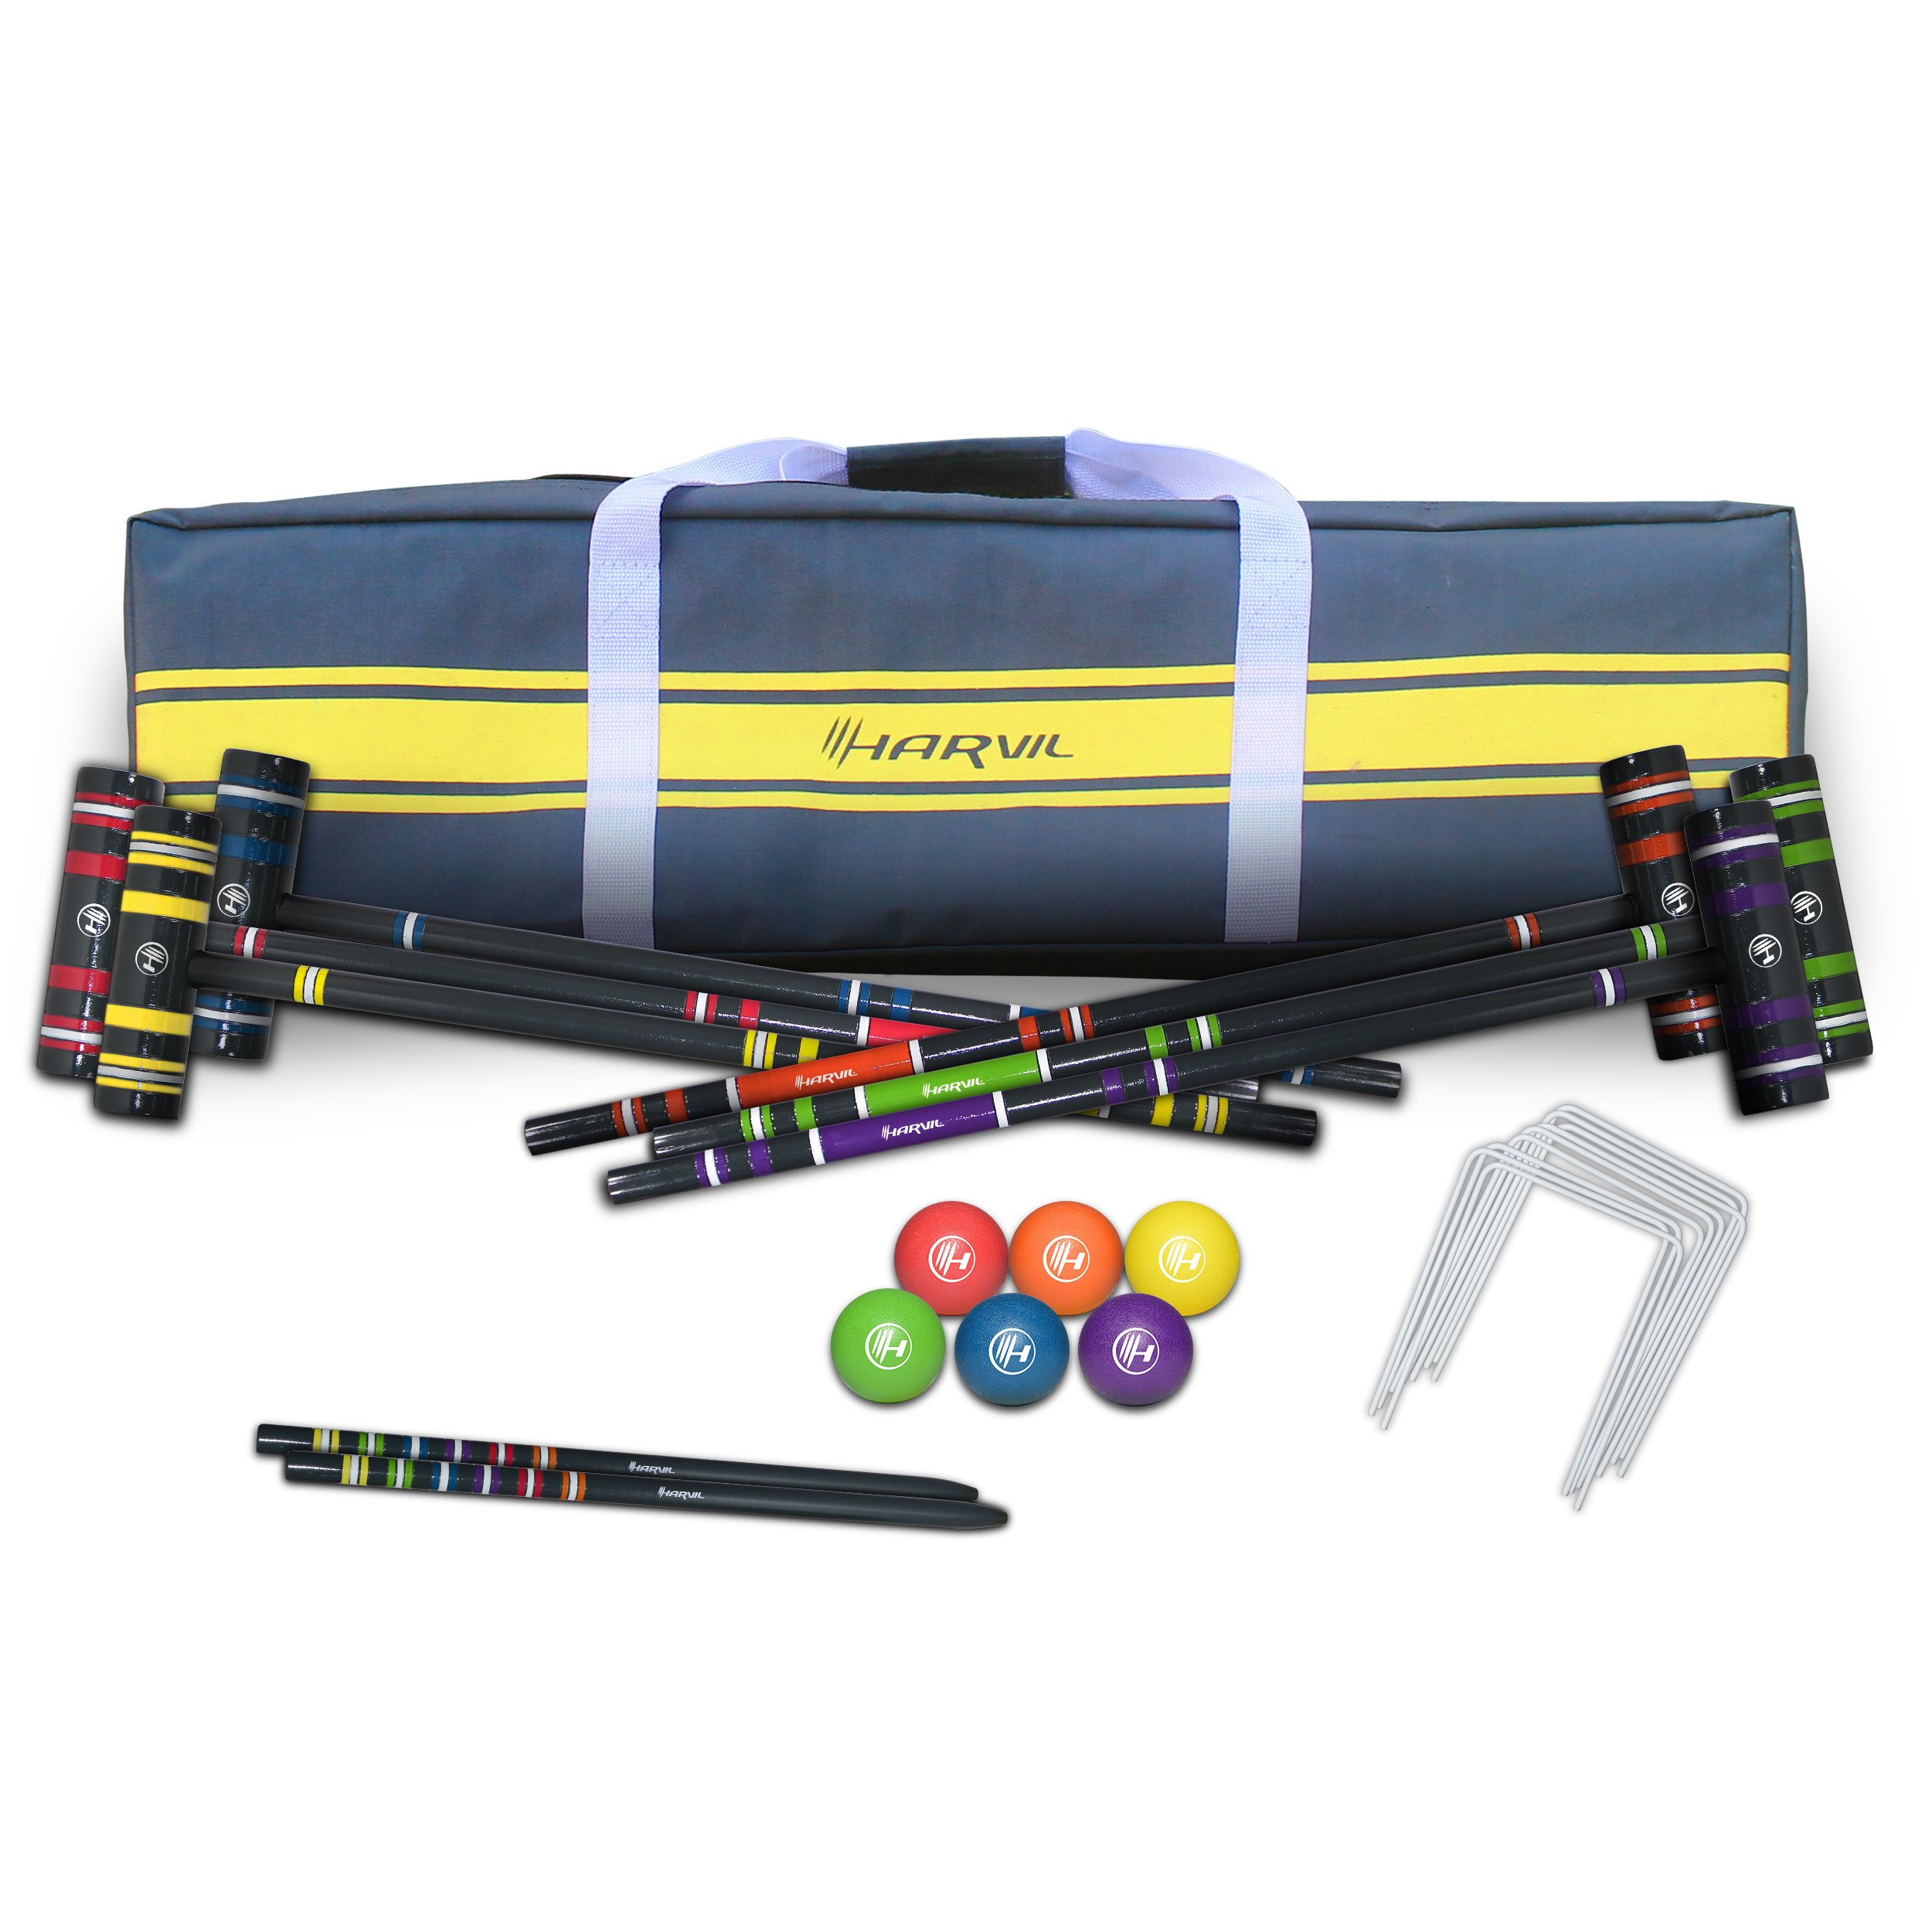 Harvil Complete Six-Player Croquet Set with Mallets, Balls, Stake Posts, Wickets and Carrying Case by Harvil